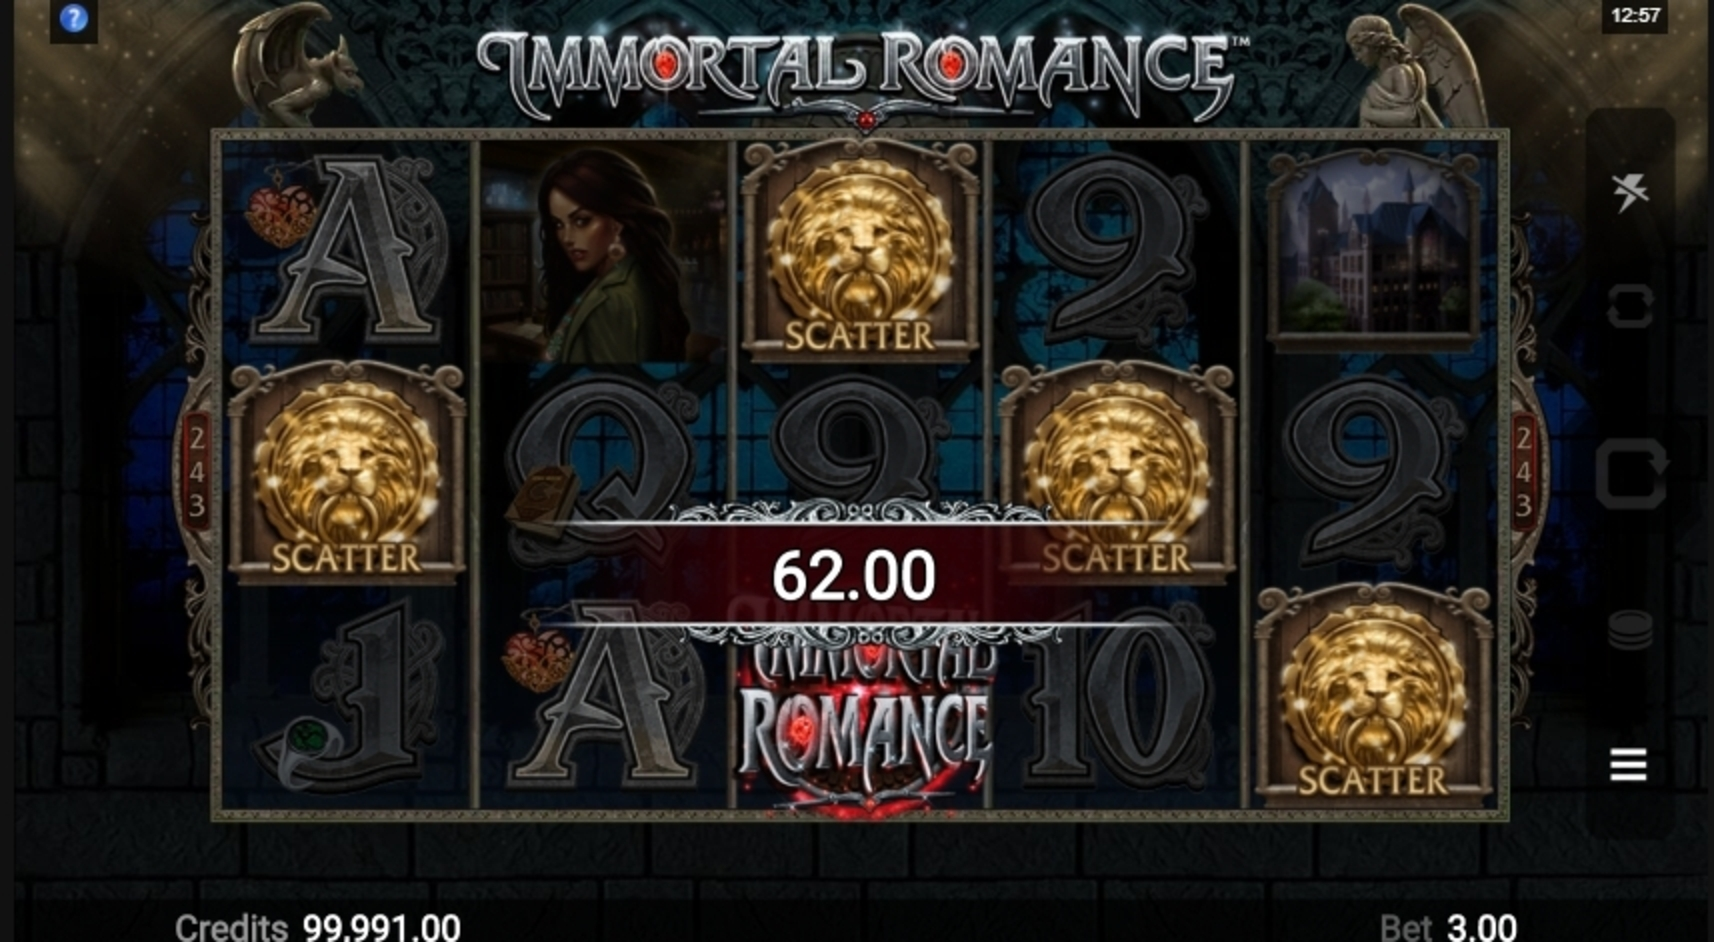 Win Money in Immortal Romance Free Slot Game by Microgaming